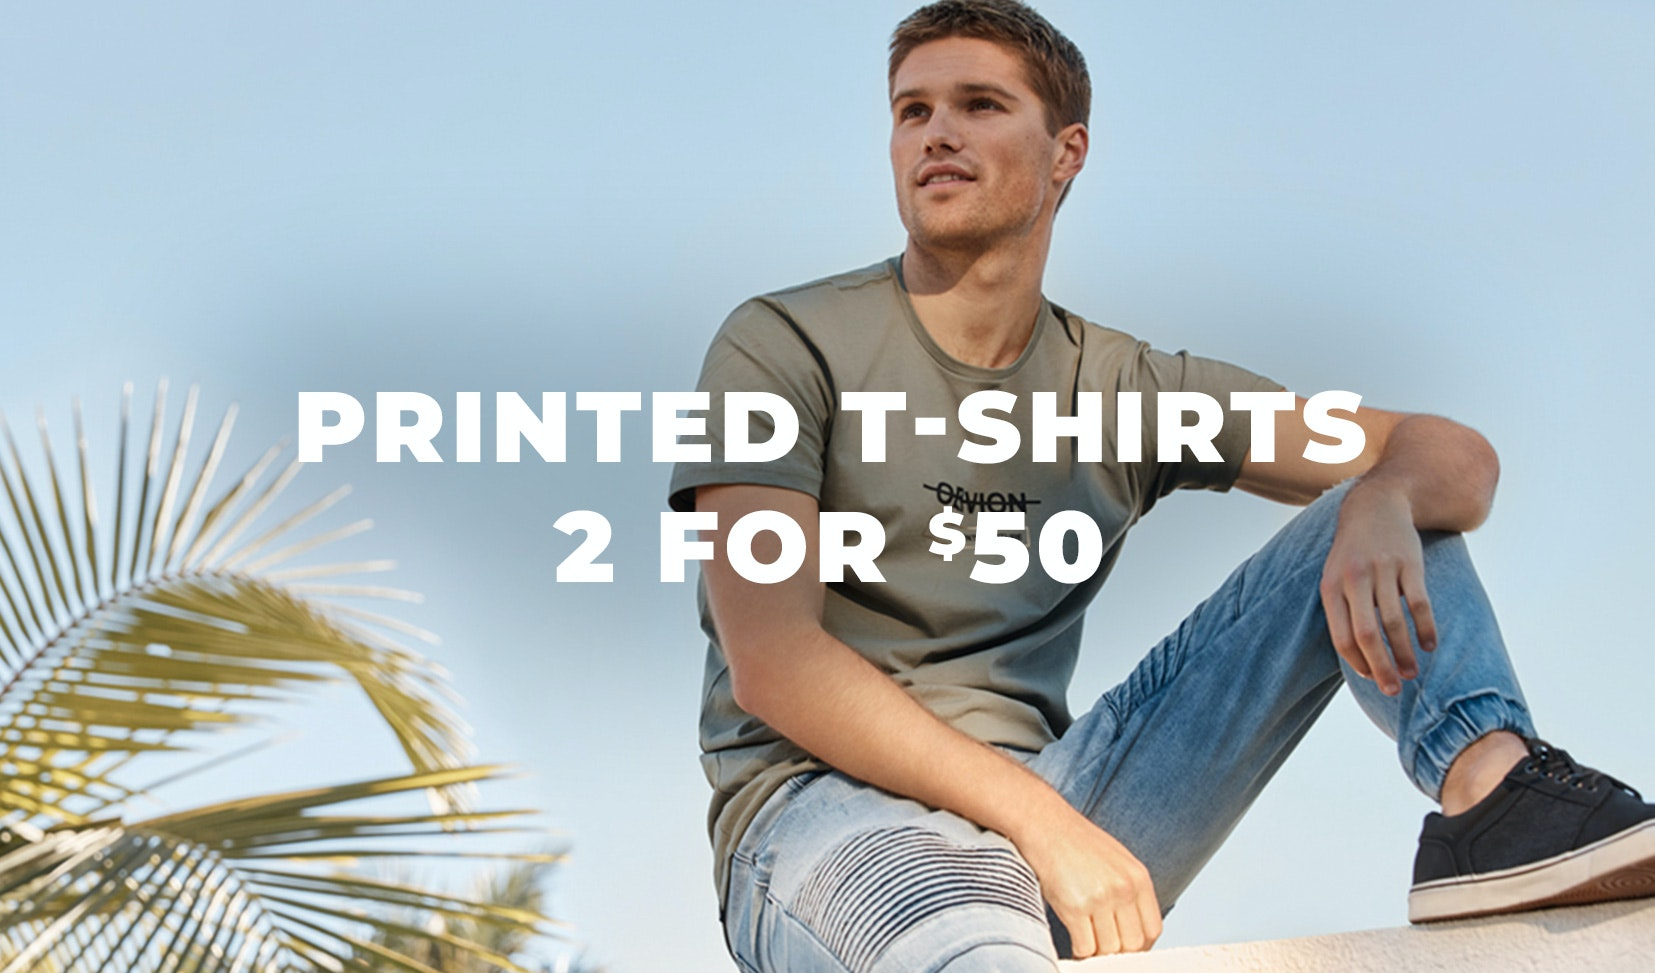 2 for 50 printed t-shirts